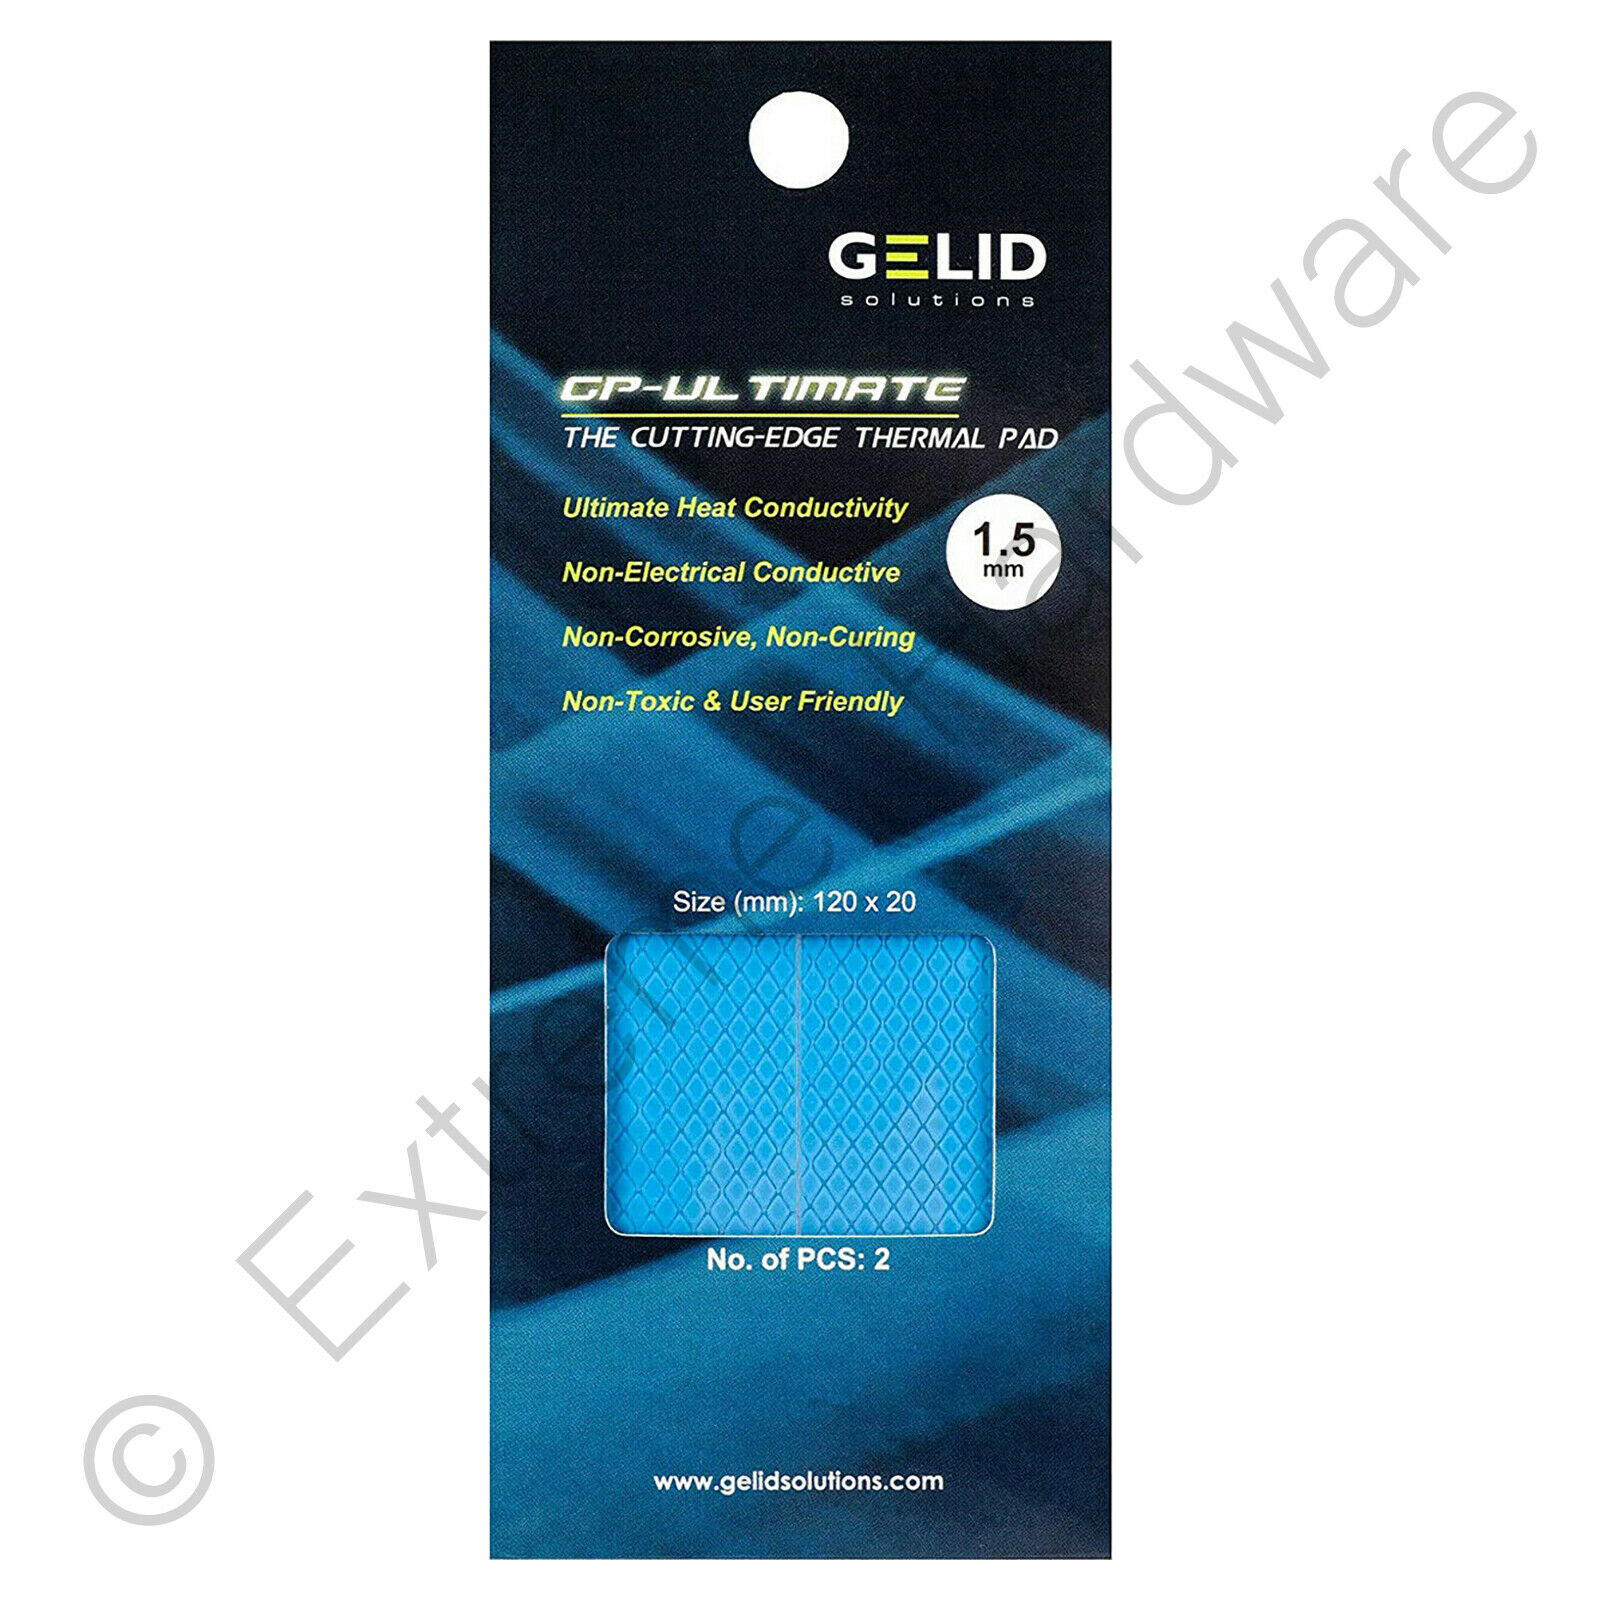 2 X Packung Gelid Solutions Gp-Ultimate Thermal Pad 120 x 20 X 1.5 MM TP VP04 R